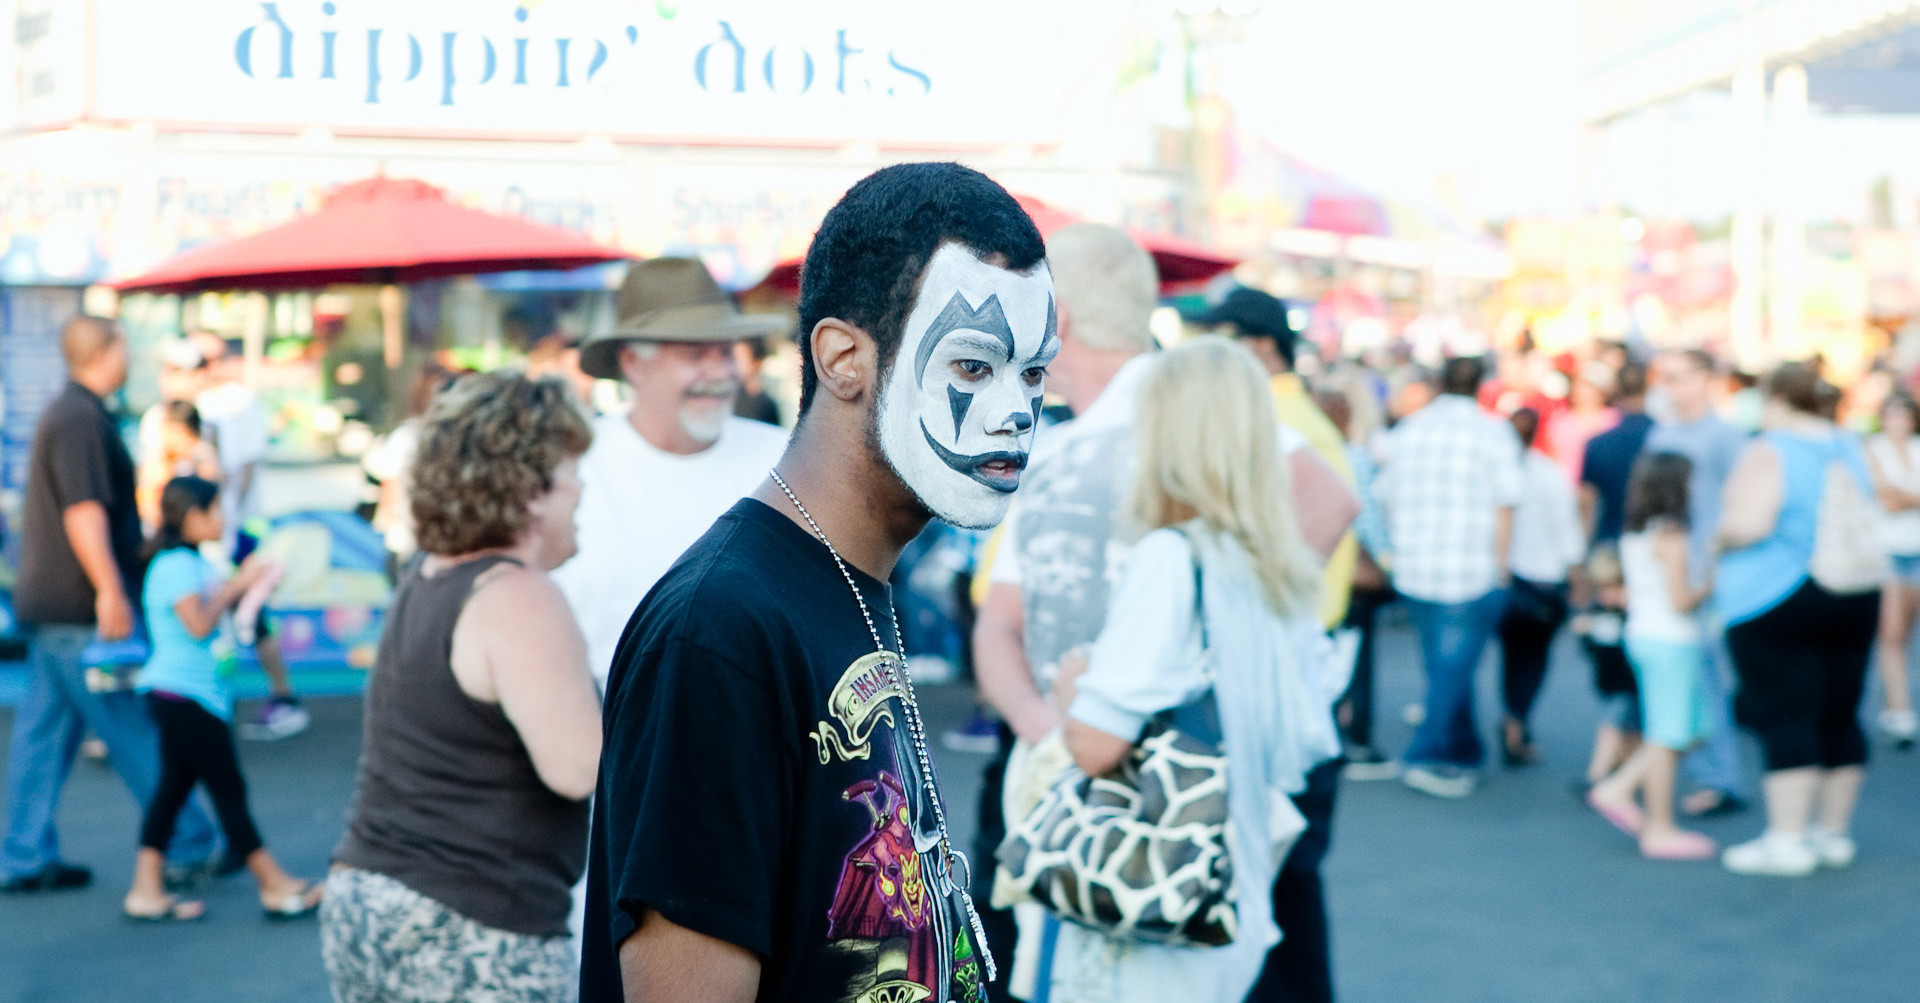 Caption: JUGGALO - COSTA MESA, Credit: Jared Eberhardt